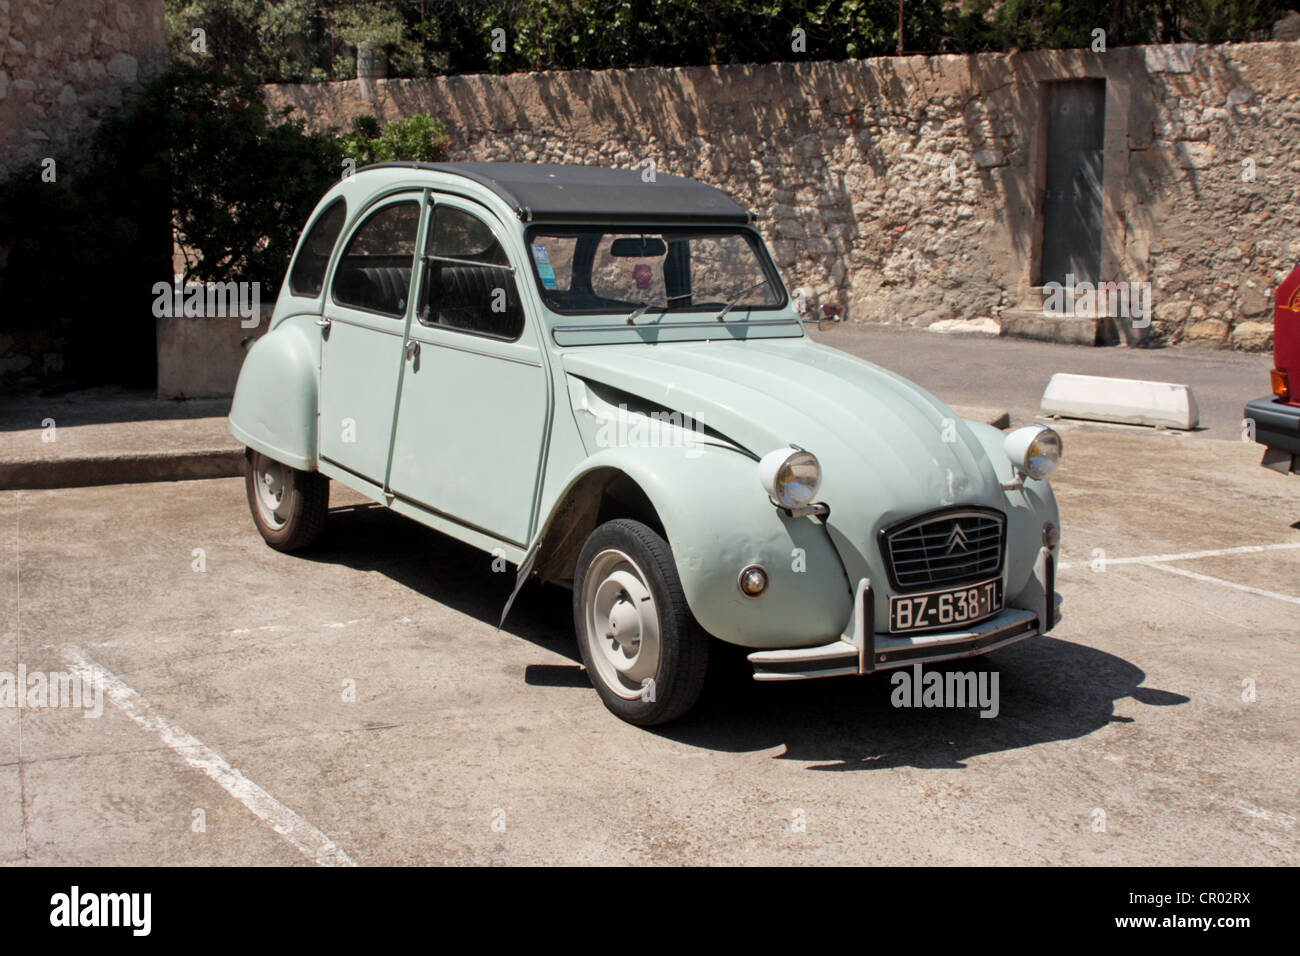 citro n 2cv deux chevaux car stock photo royalty free image 48560062 alamy. Black Bedroom Furniture Sets. Home Design Ideas